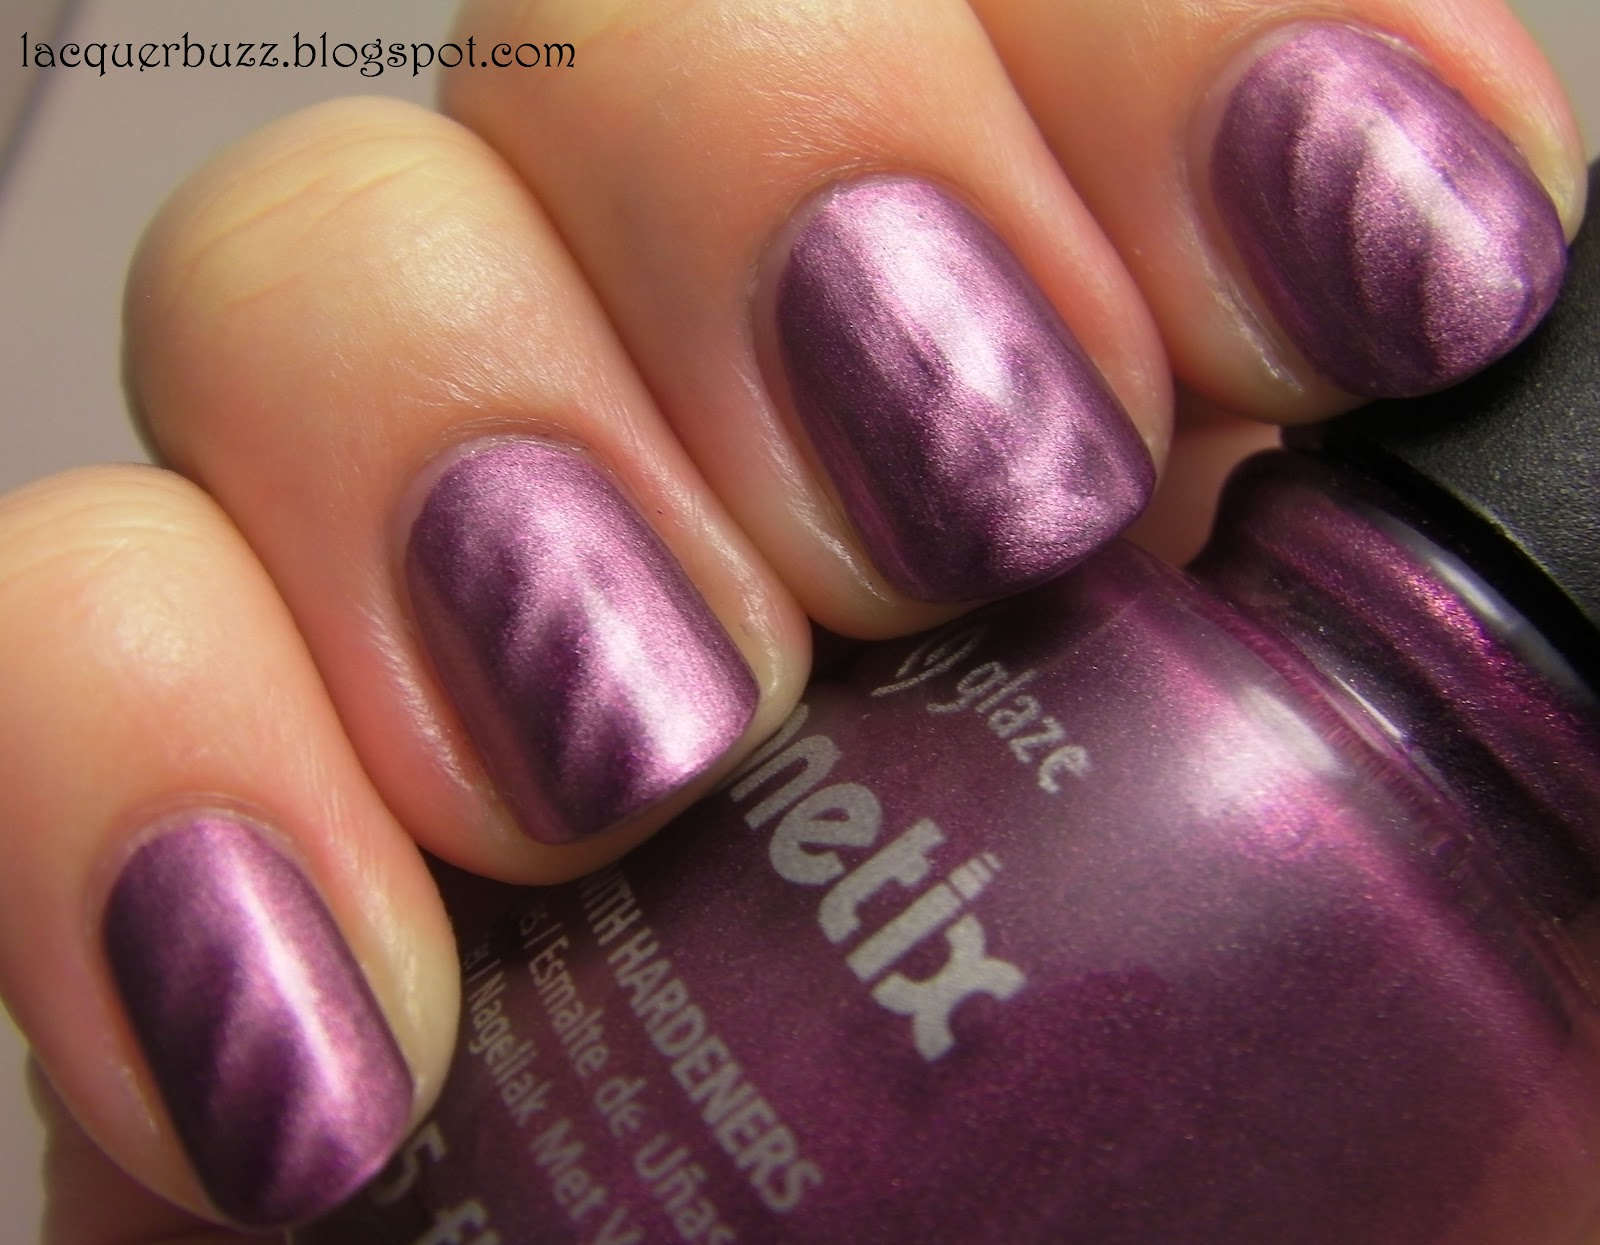 Lacquer Buzz: China Glaze Magnetix Drawn To You